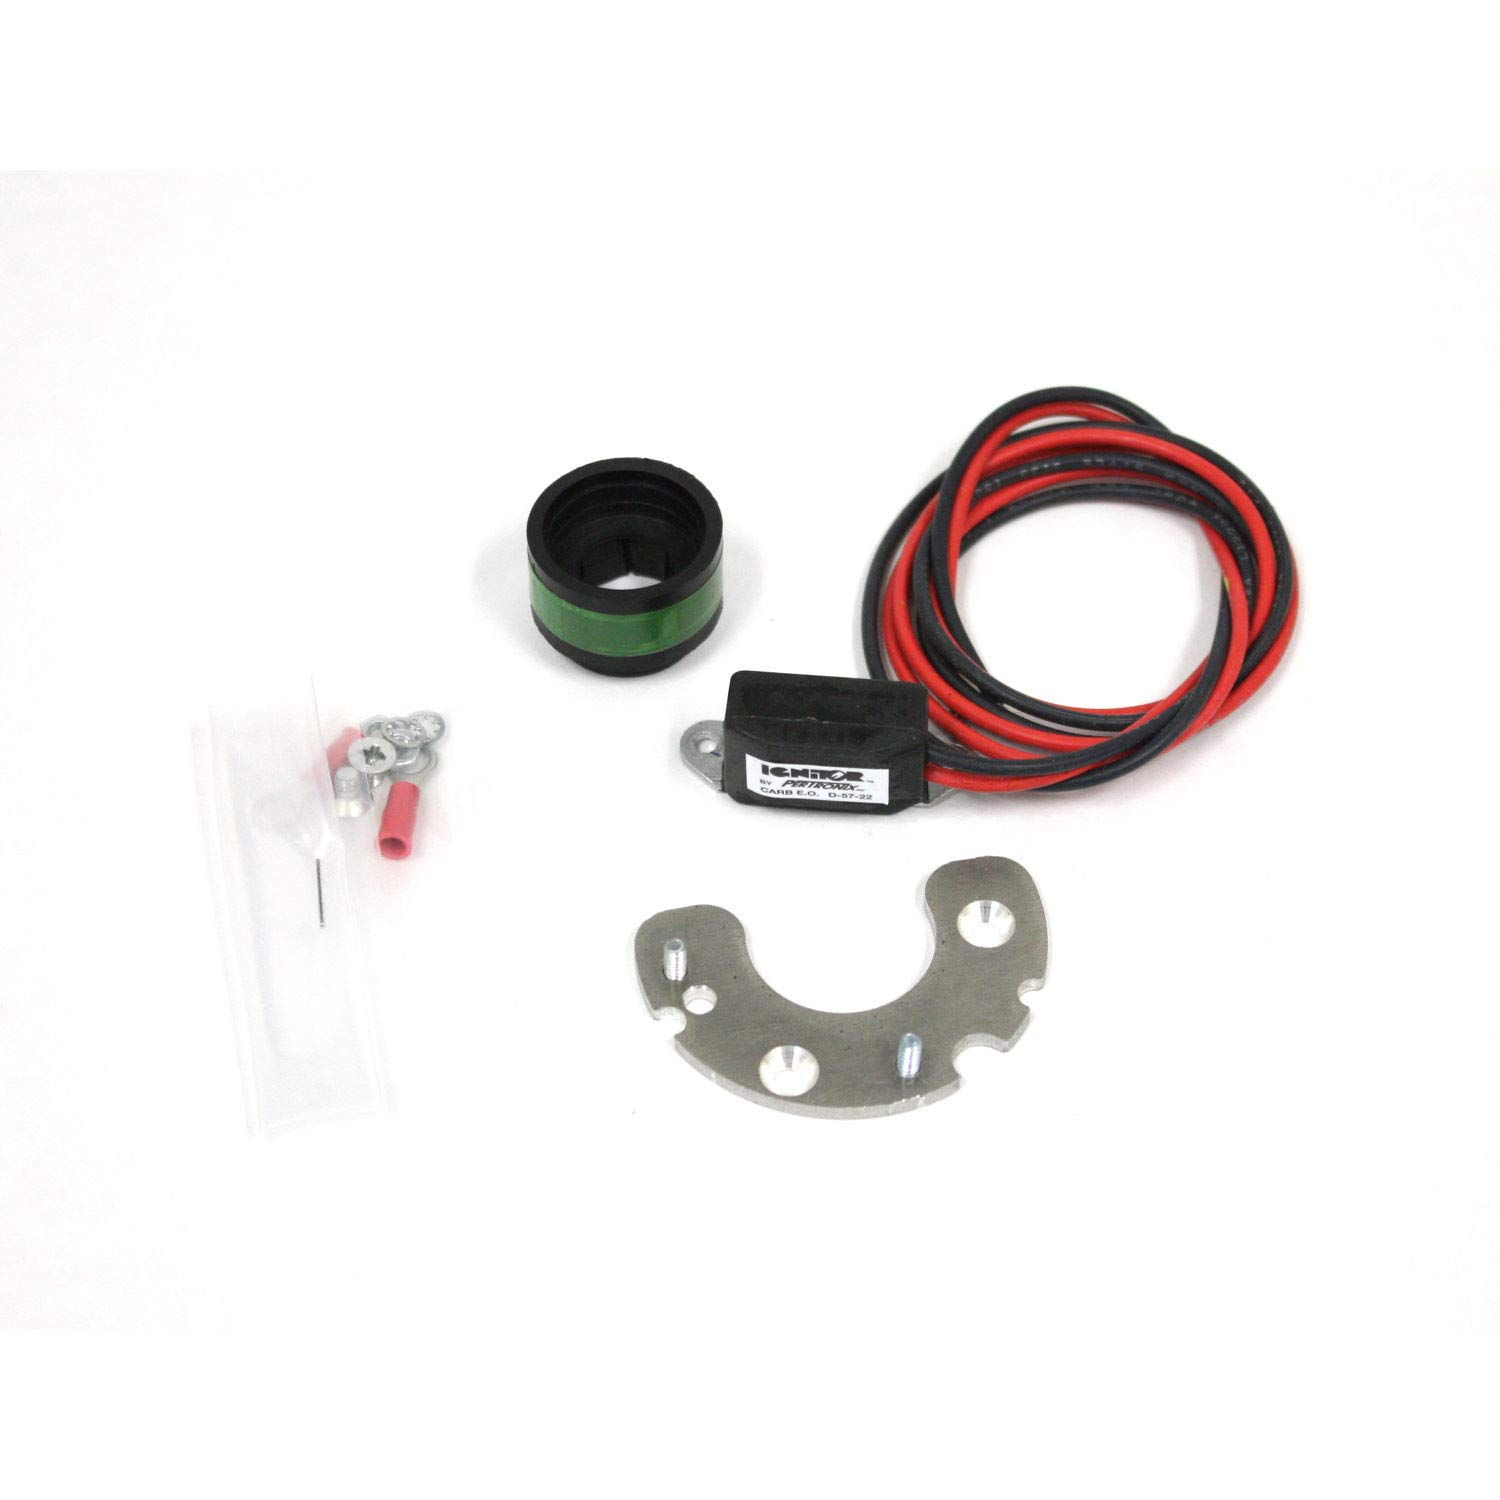 Pertronix 1248A Ignitor for Ford 4 Cylinder Engine by Pertronix